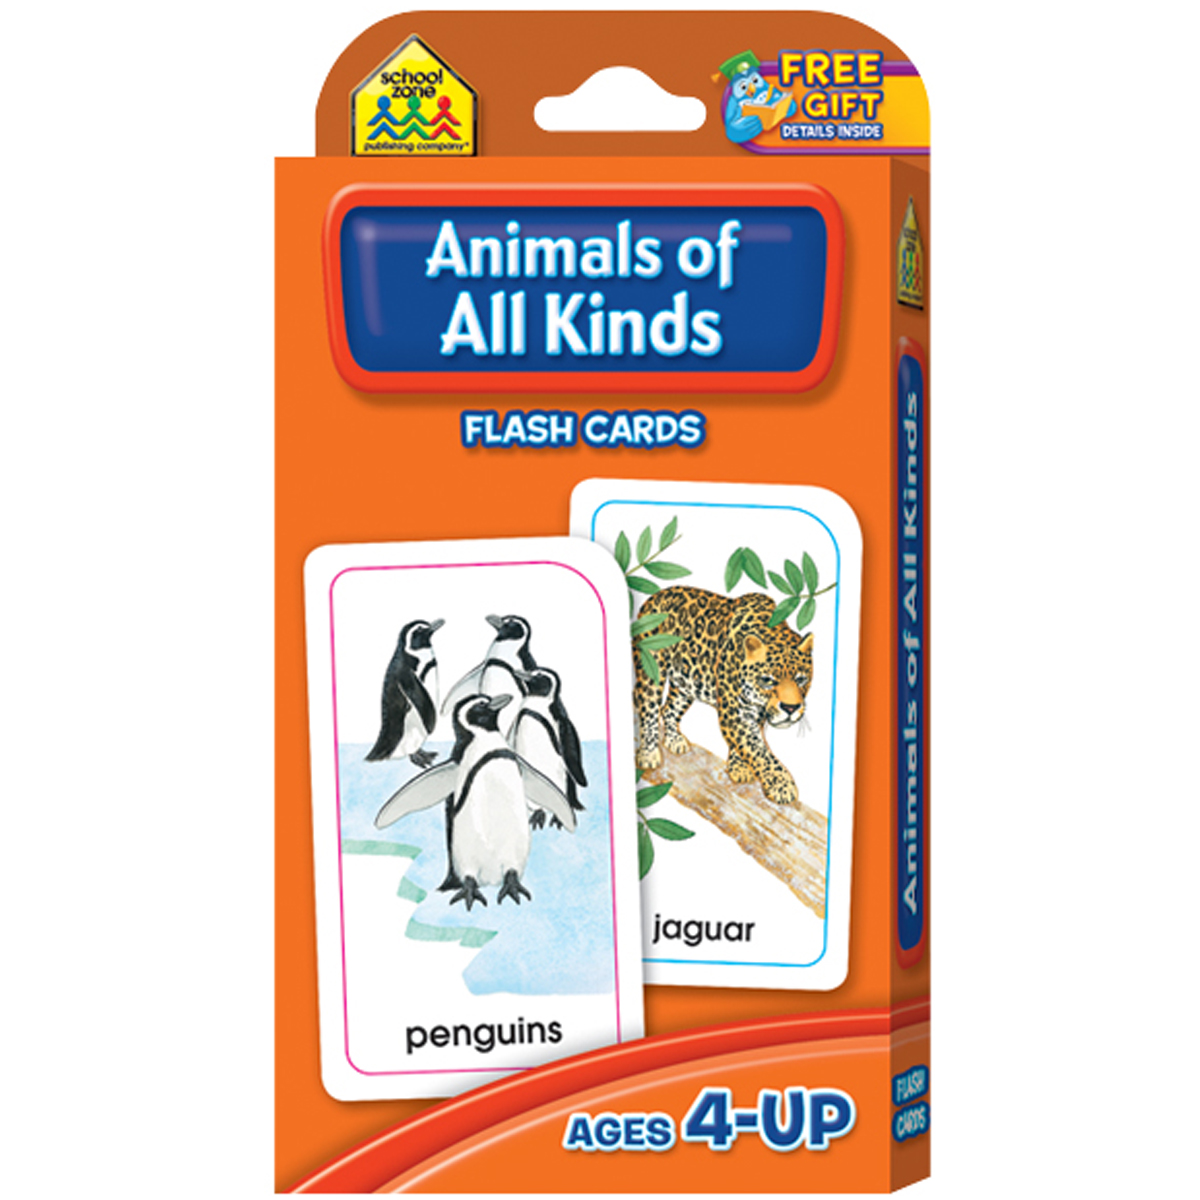 Flash Cards-Animals of All Kinds, 54pk